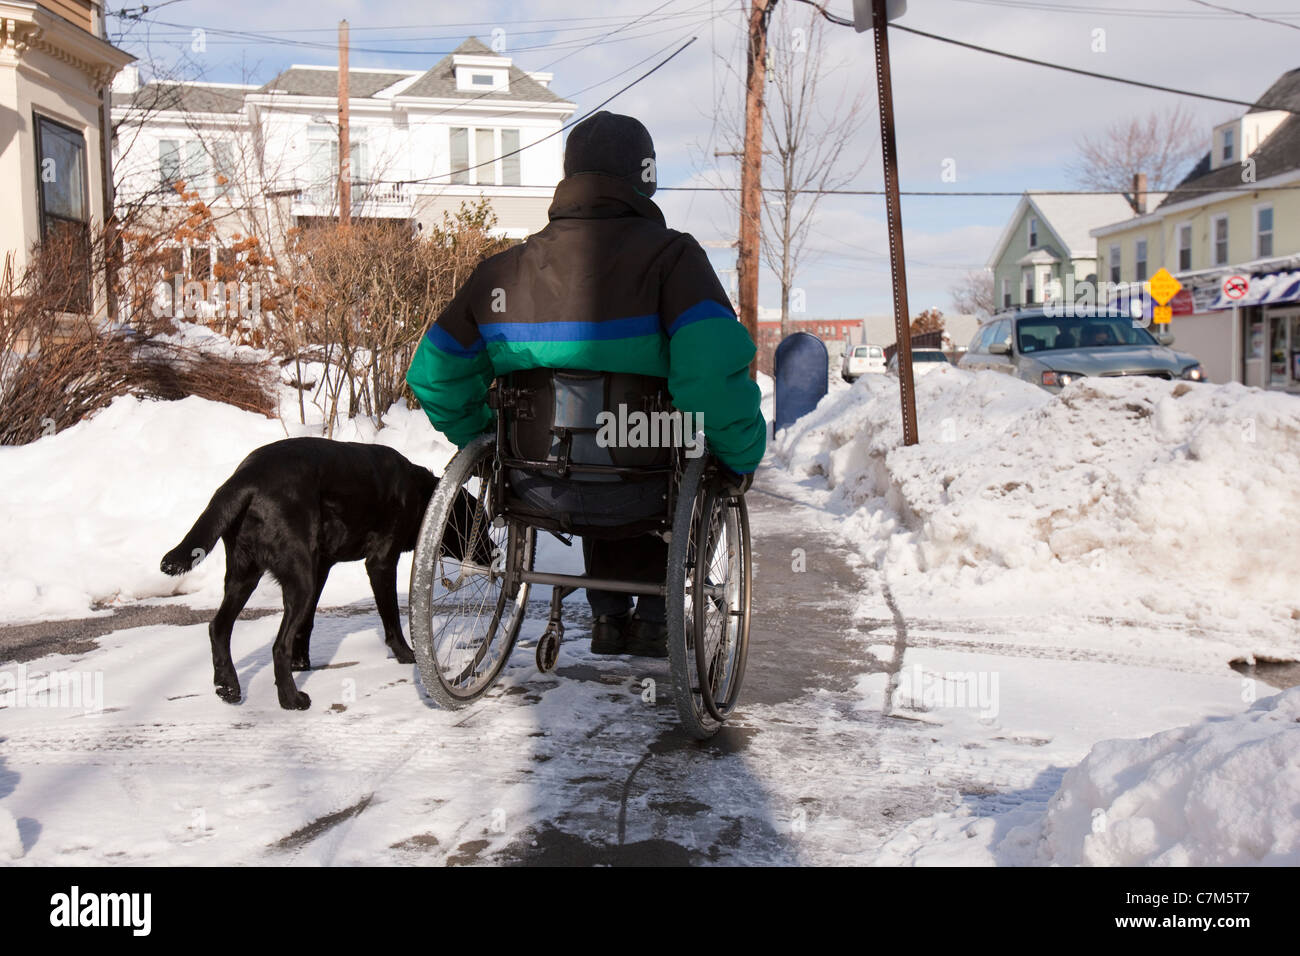 Woman with multiple sclerosis trying to get to the mailbox with a service dog - Stock Image